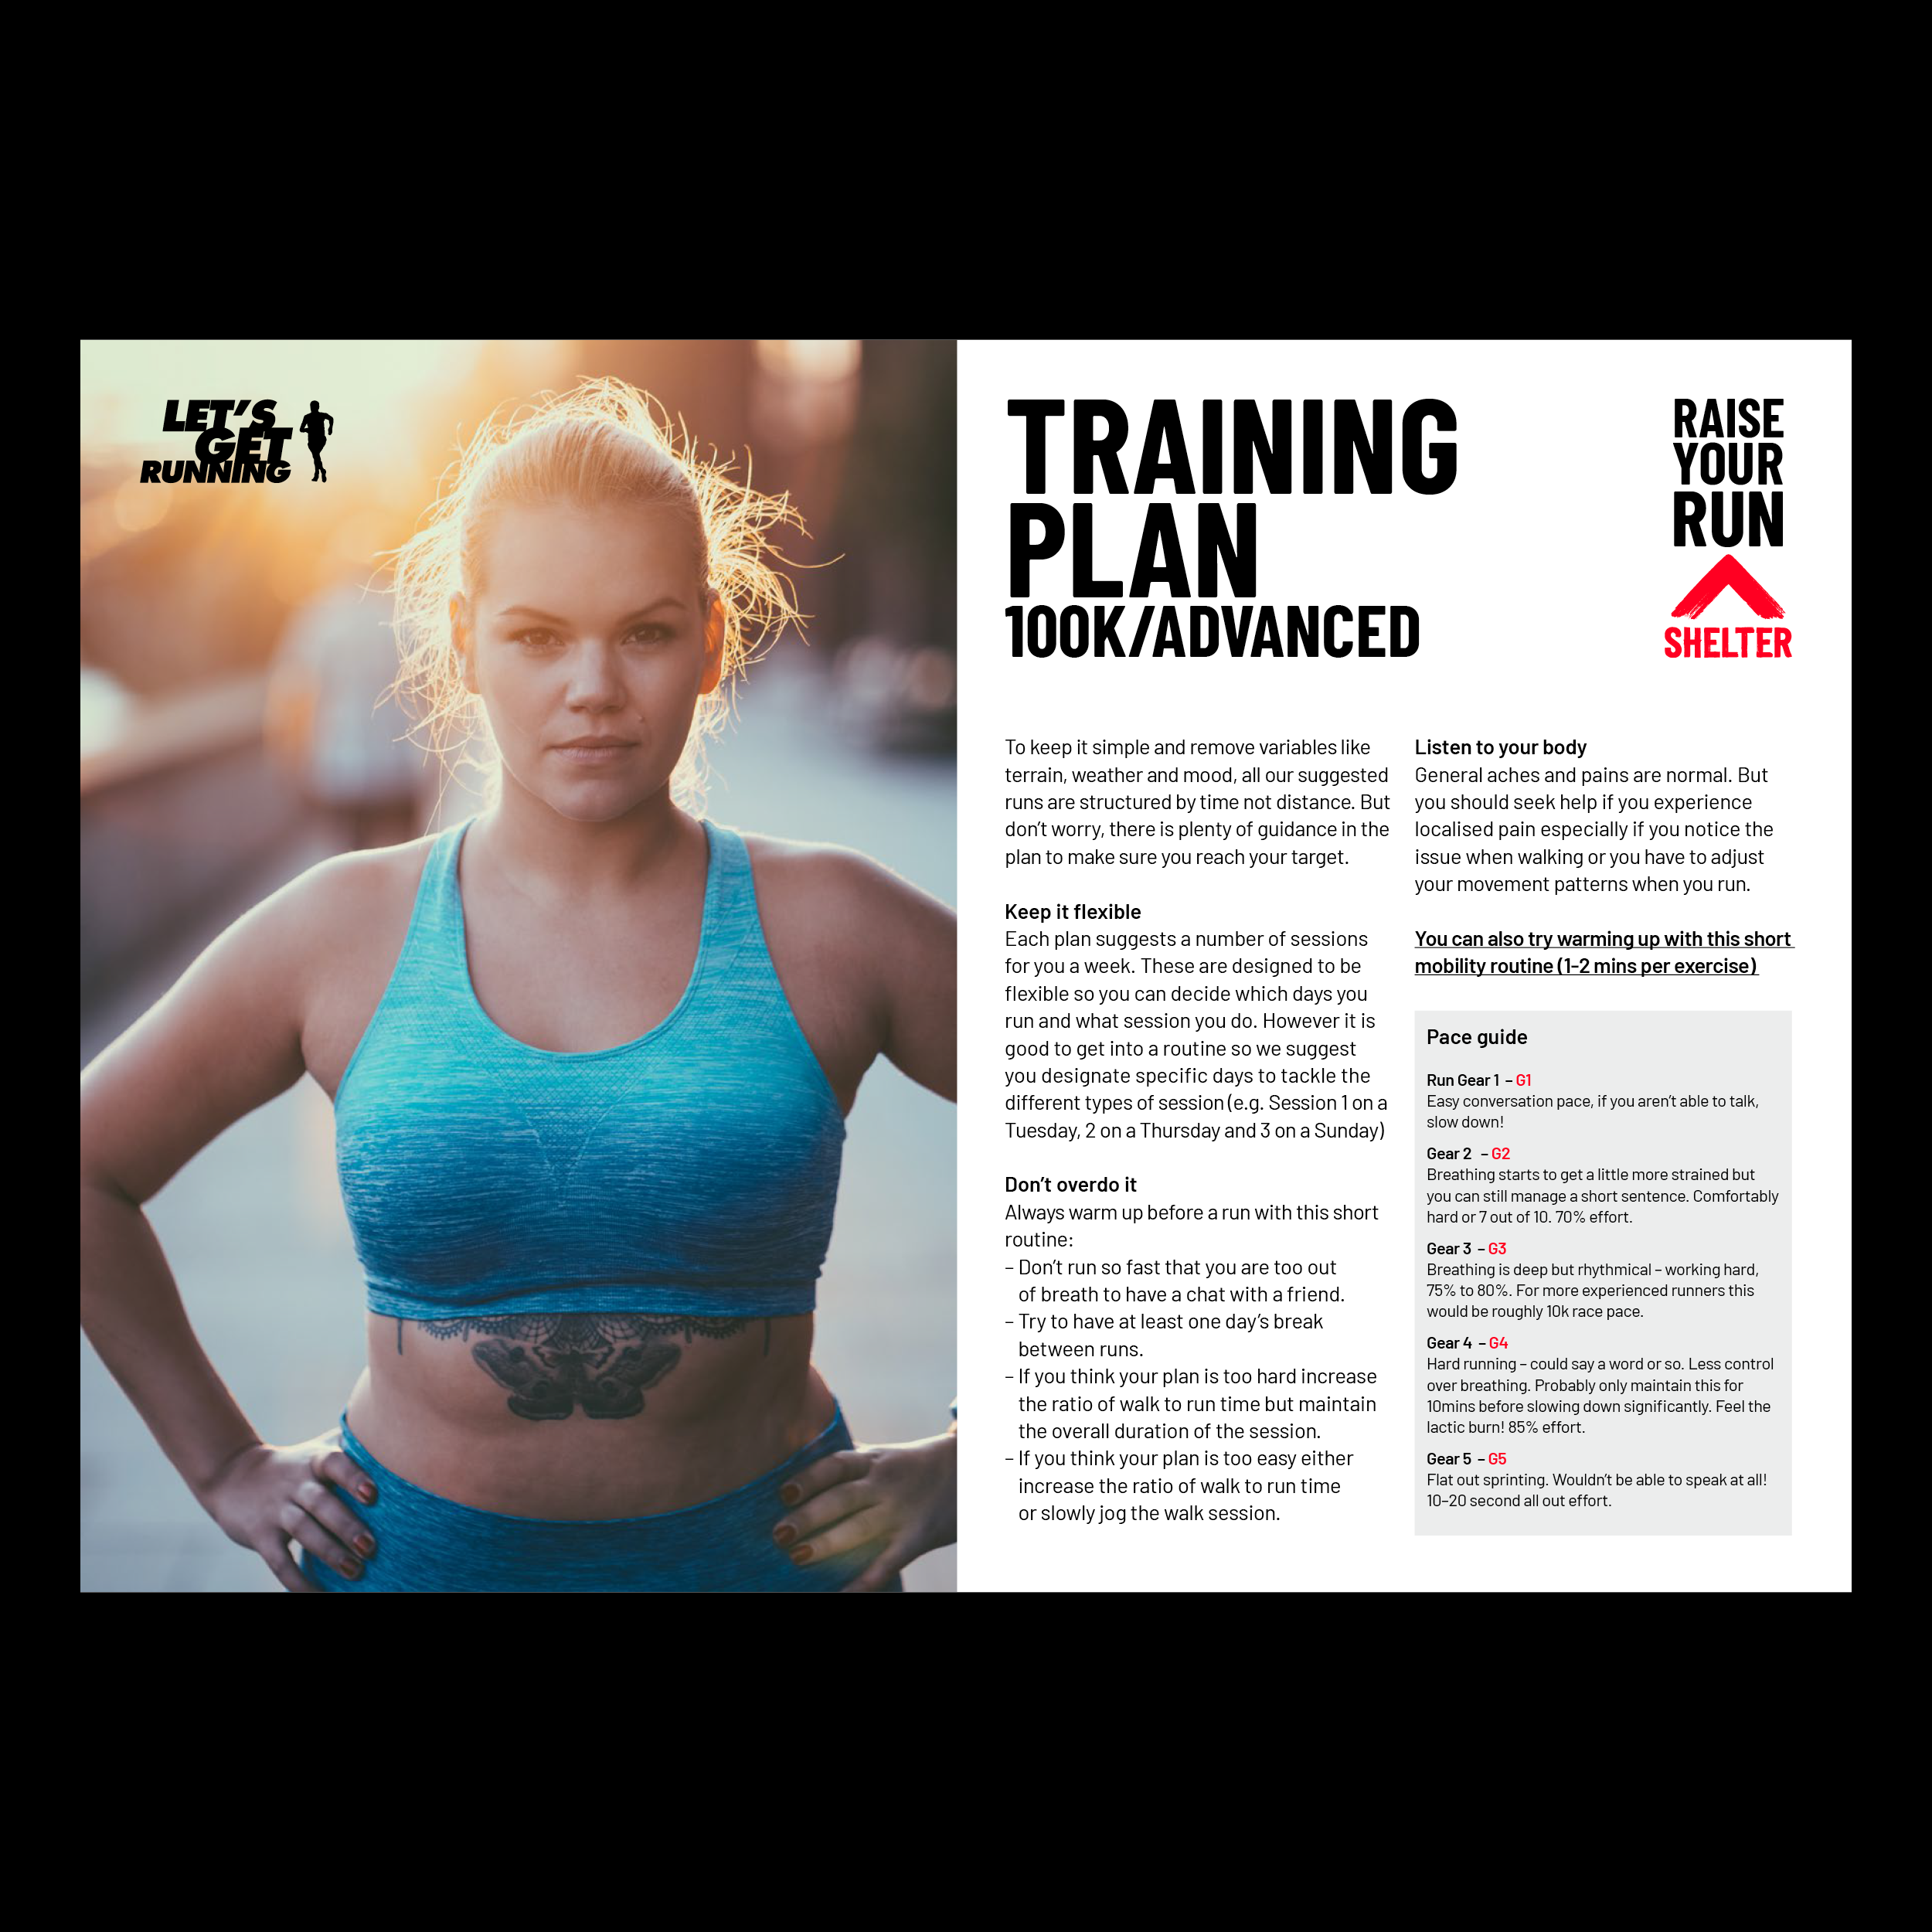 Preview image of the training plan